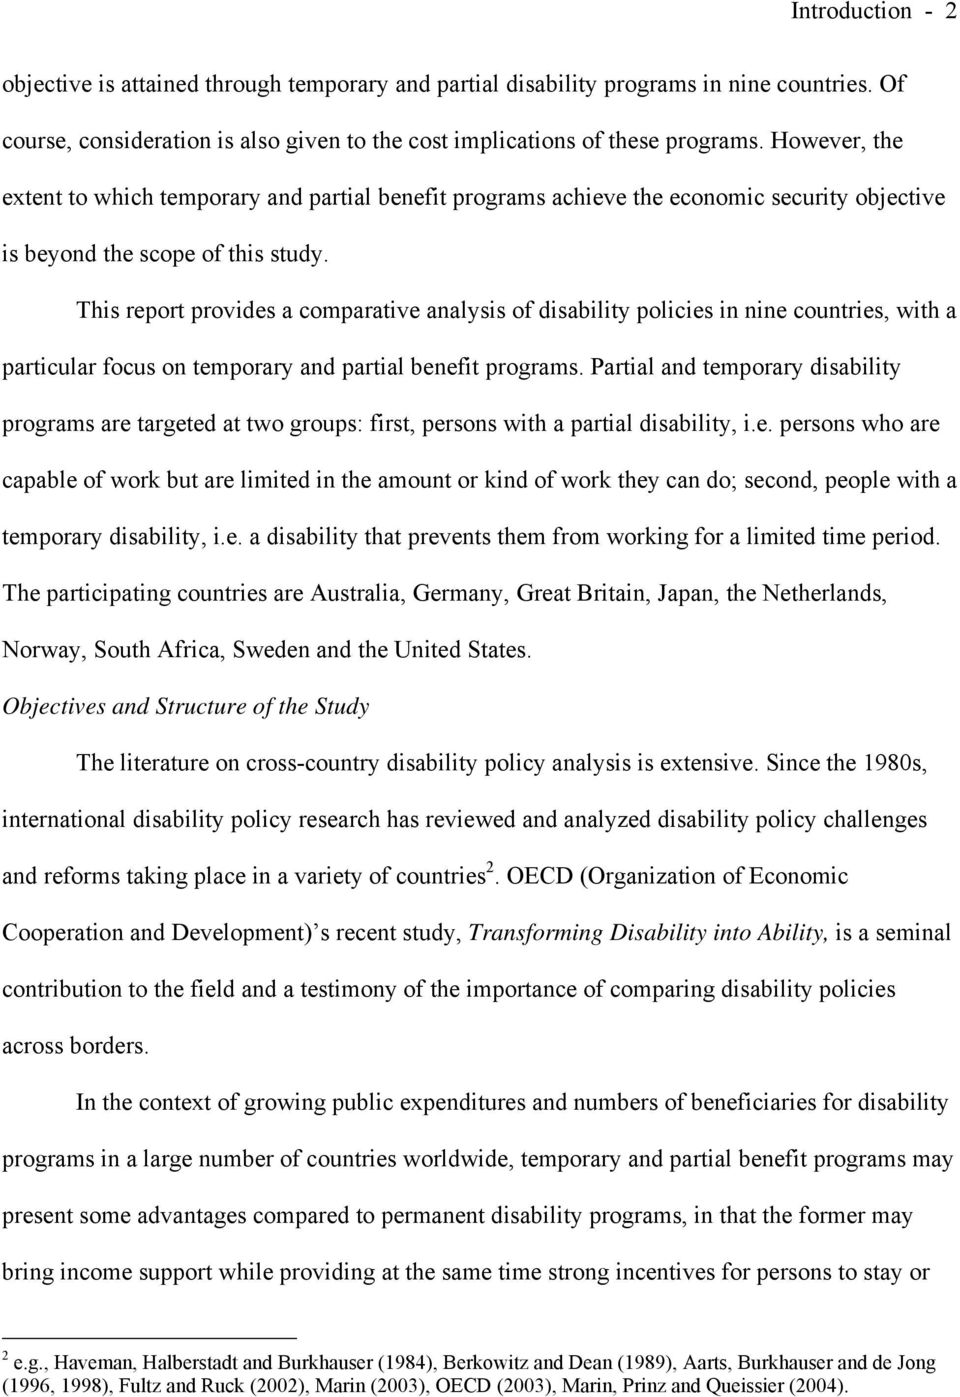 This report provides a comparative analysis of disability policies in nine countries, with a particular focus on temporary and partial benefit programs.